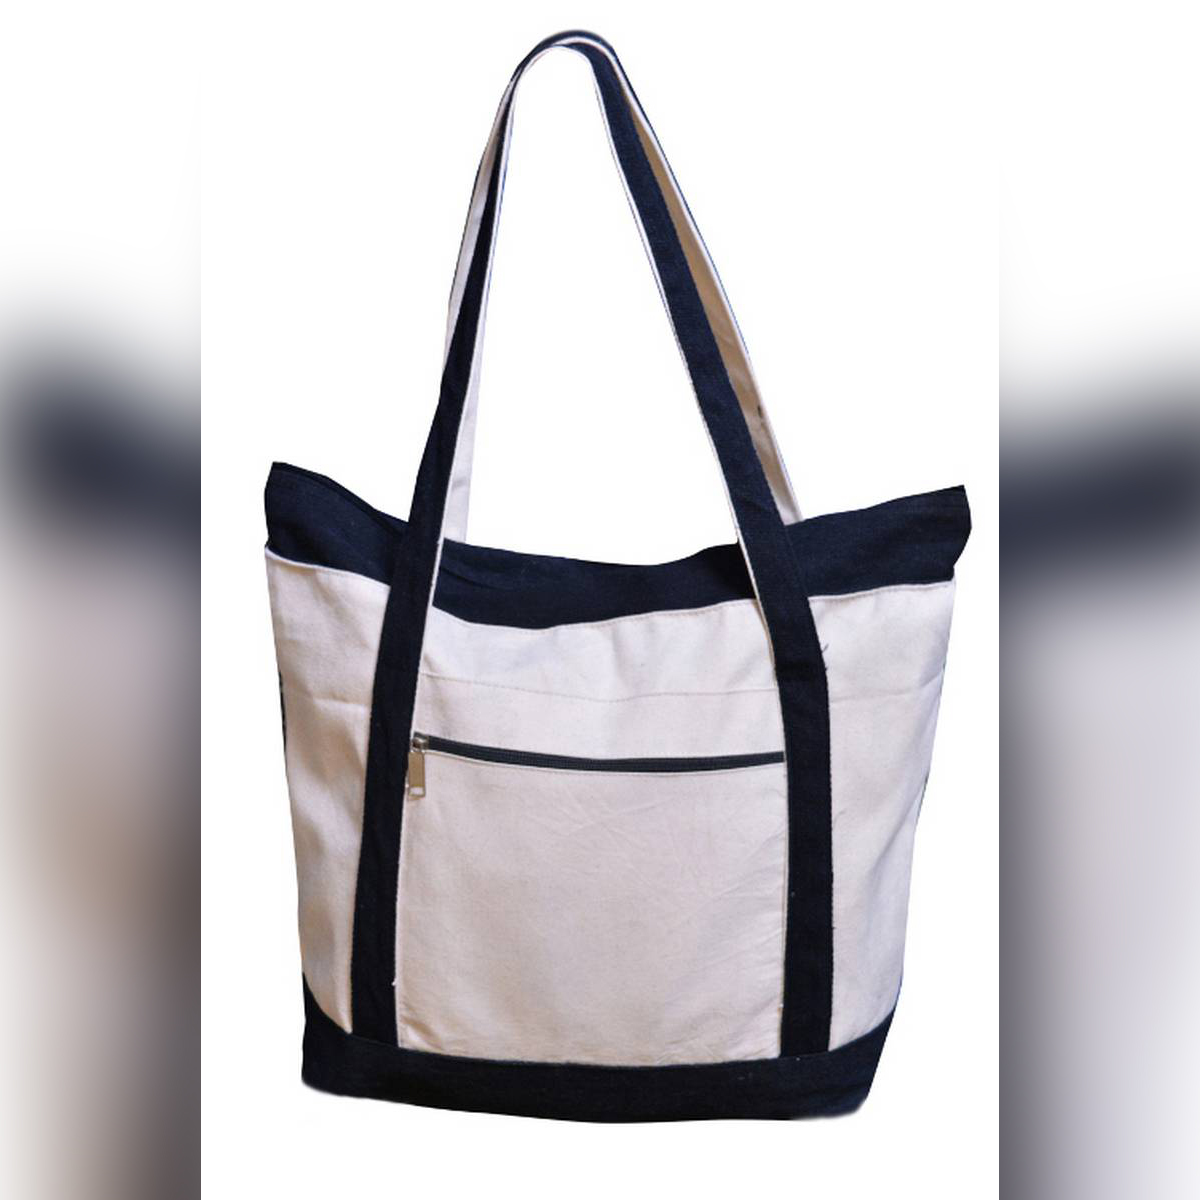 Girls Tote Hand Bag in low price